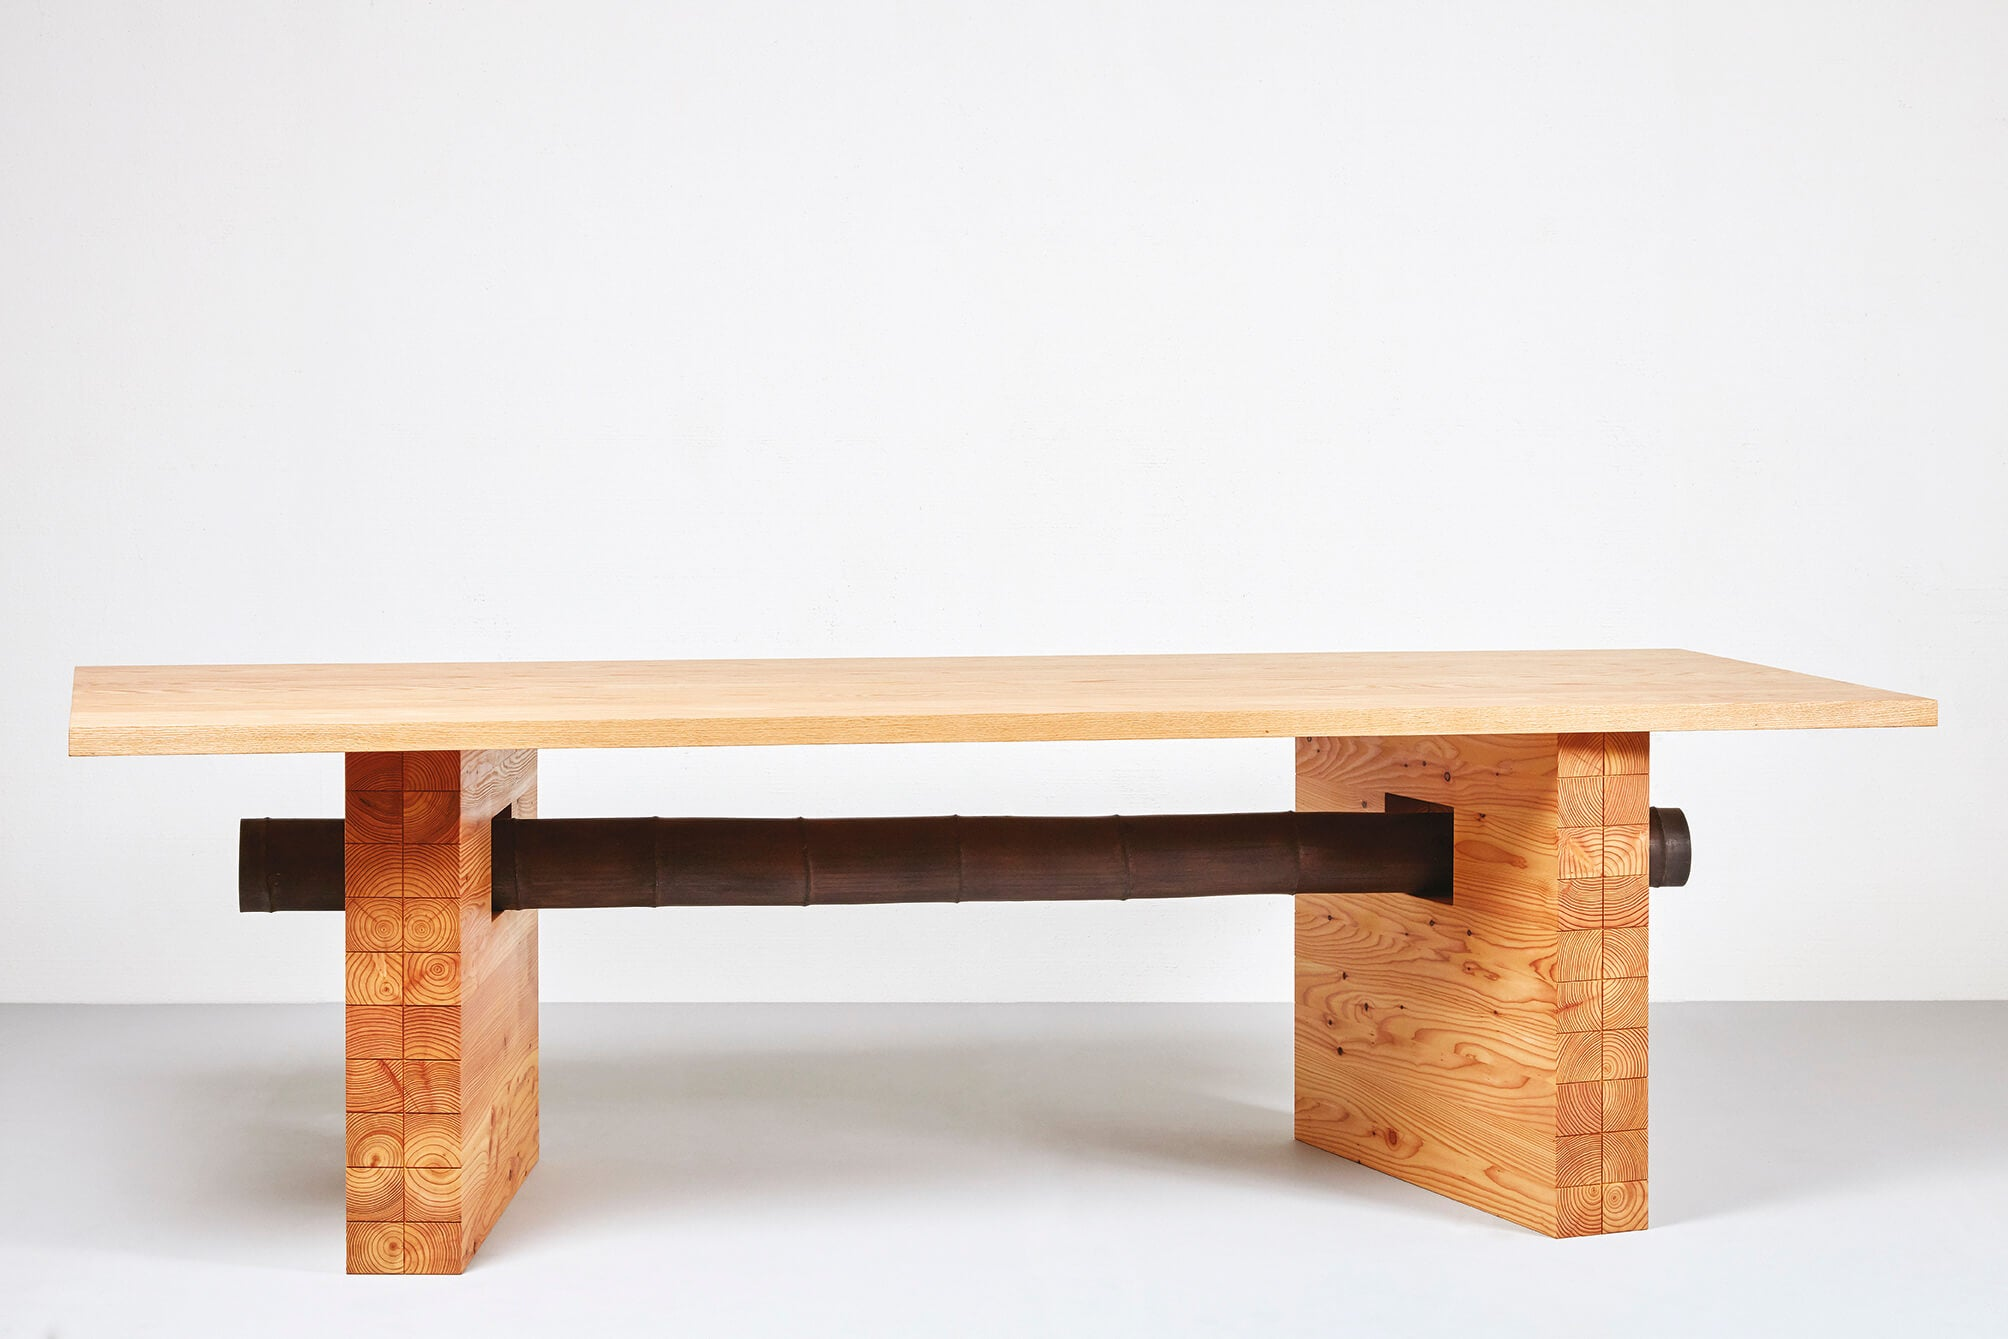 Furniture art exhibit features wood finished with Rubio Monocoat hardwax oil finishes.